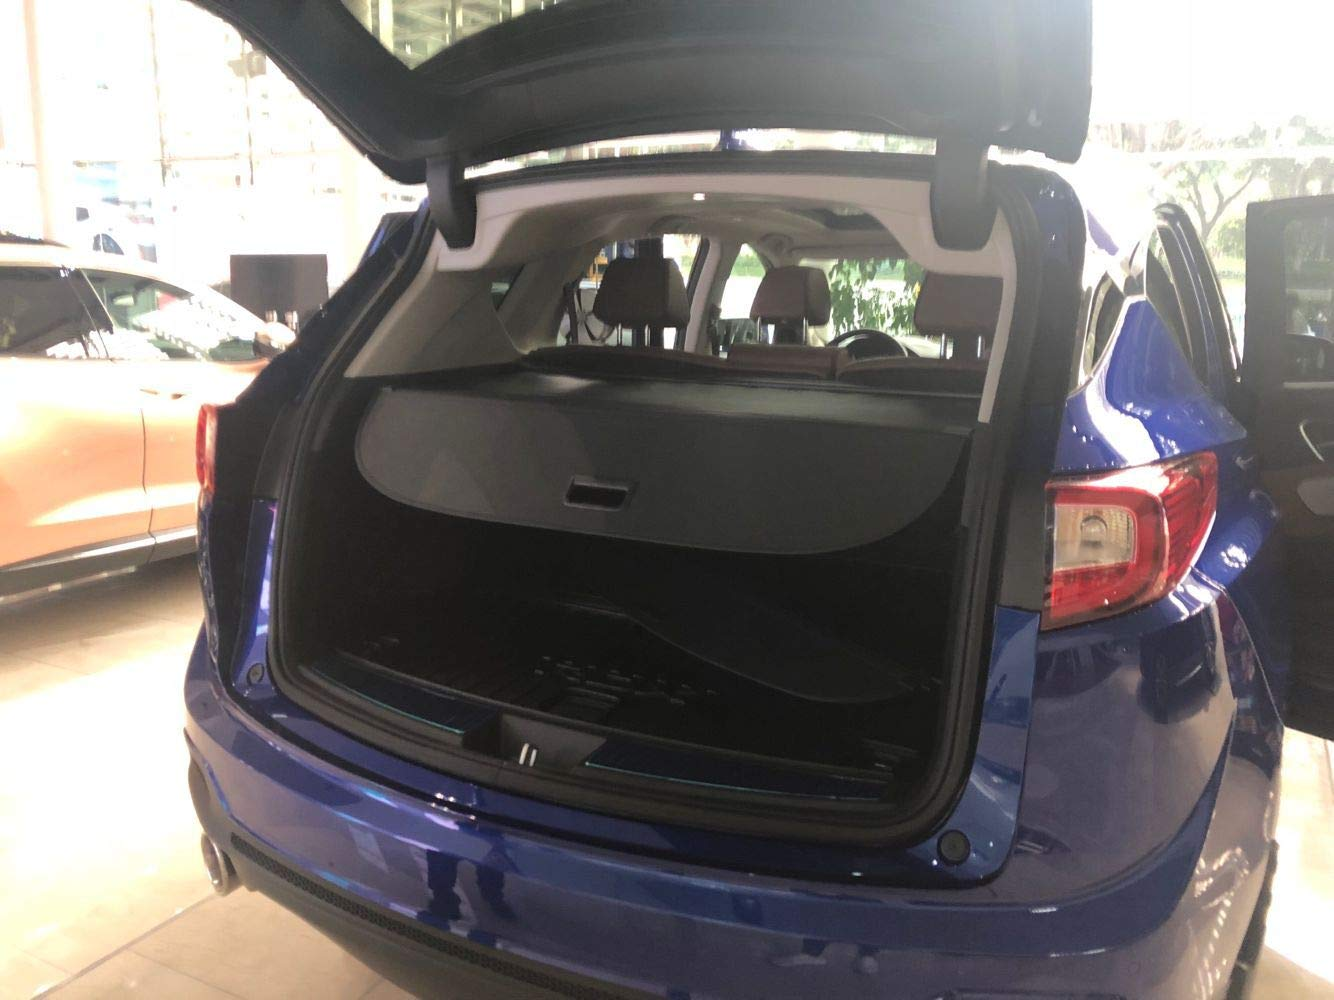 Kaungka Cargo Cover Compatible for 2019 Acura RDX RDX Black Trunk Shielding Shade (Updated Version:There is no Gap Between The Back Seats and The Trunk Cover)